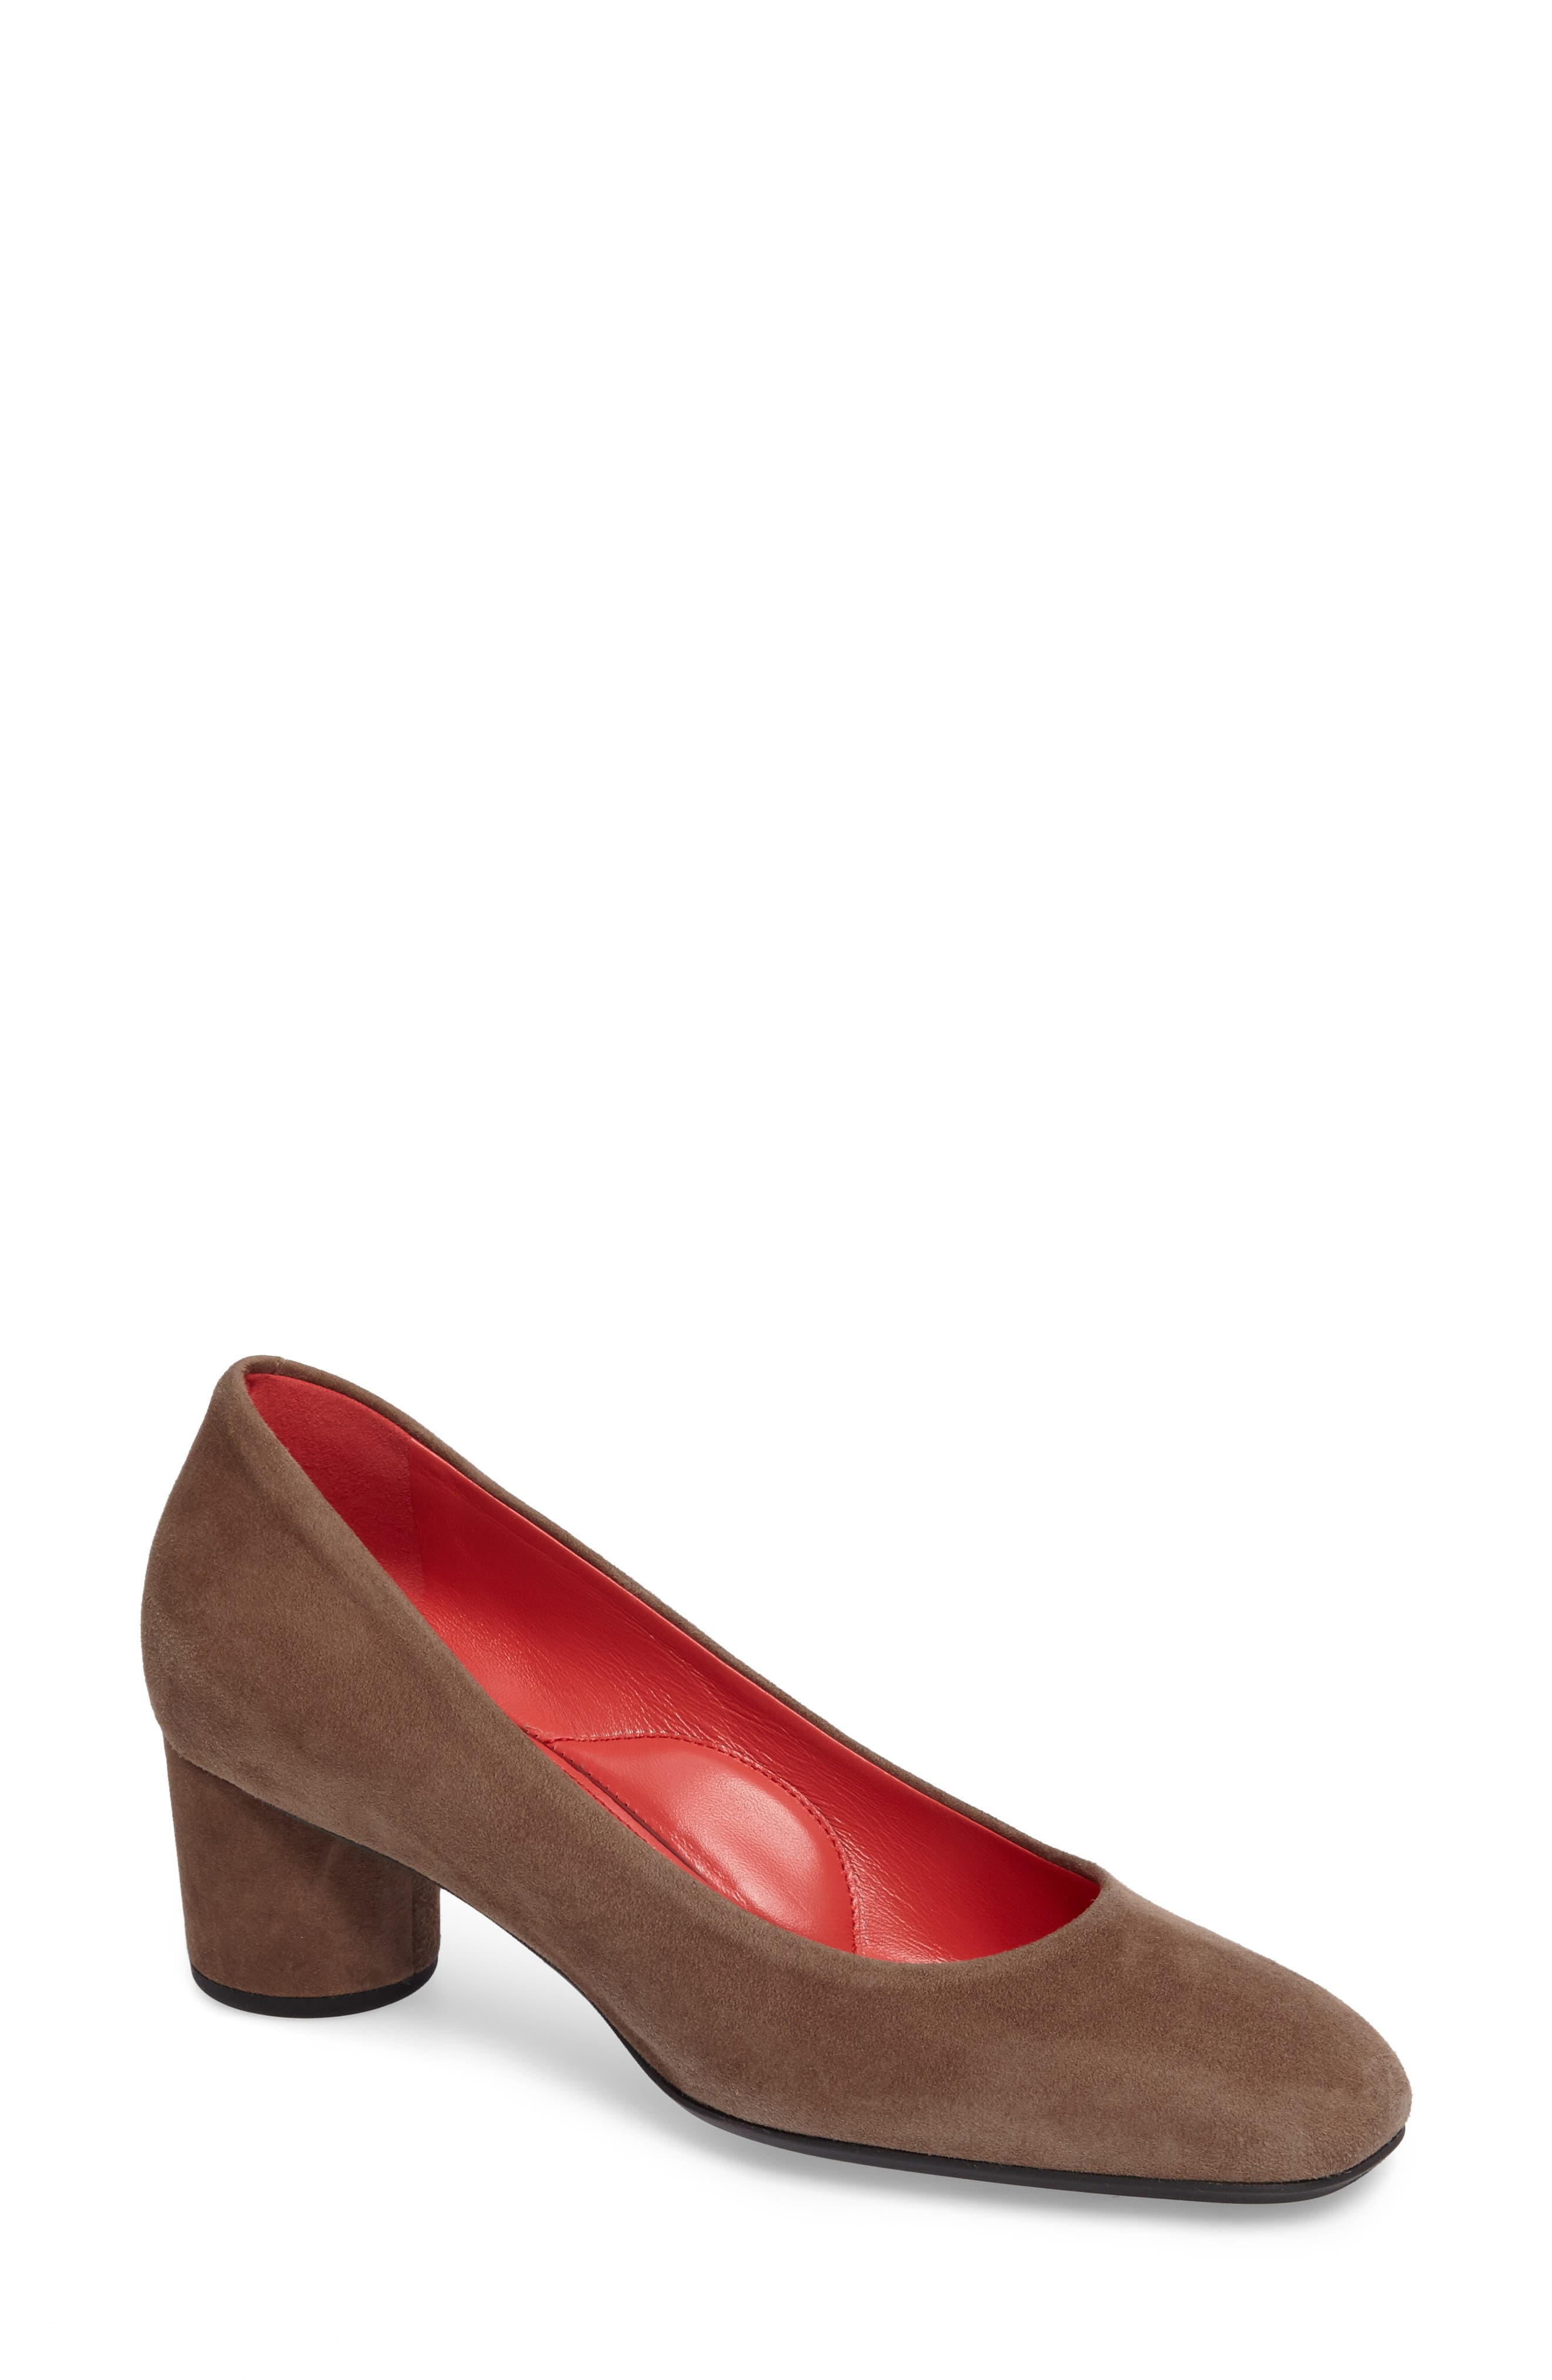 Pas de Rouge Block Heel Pump (Women)